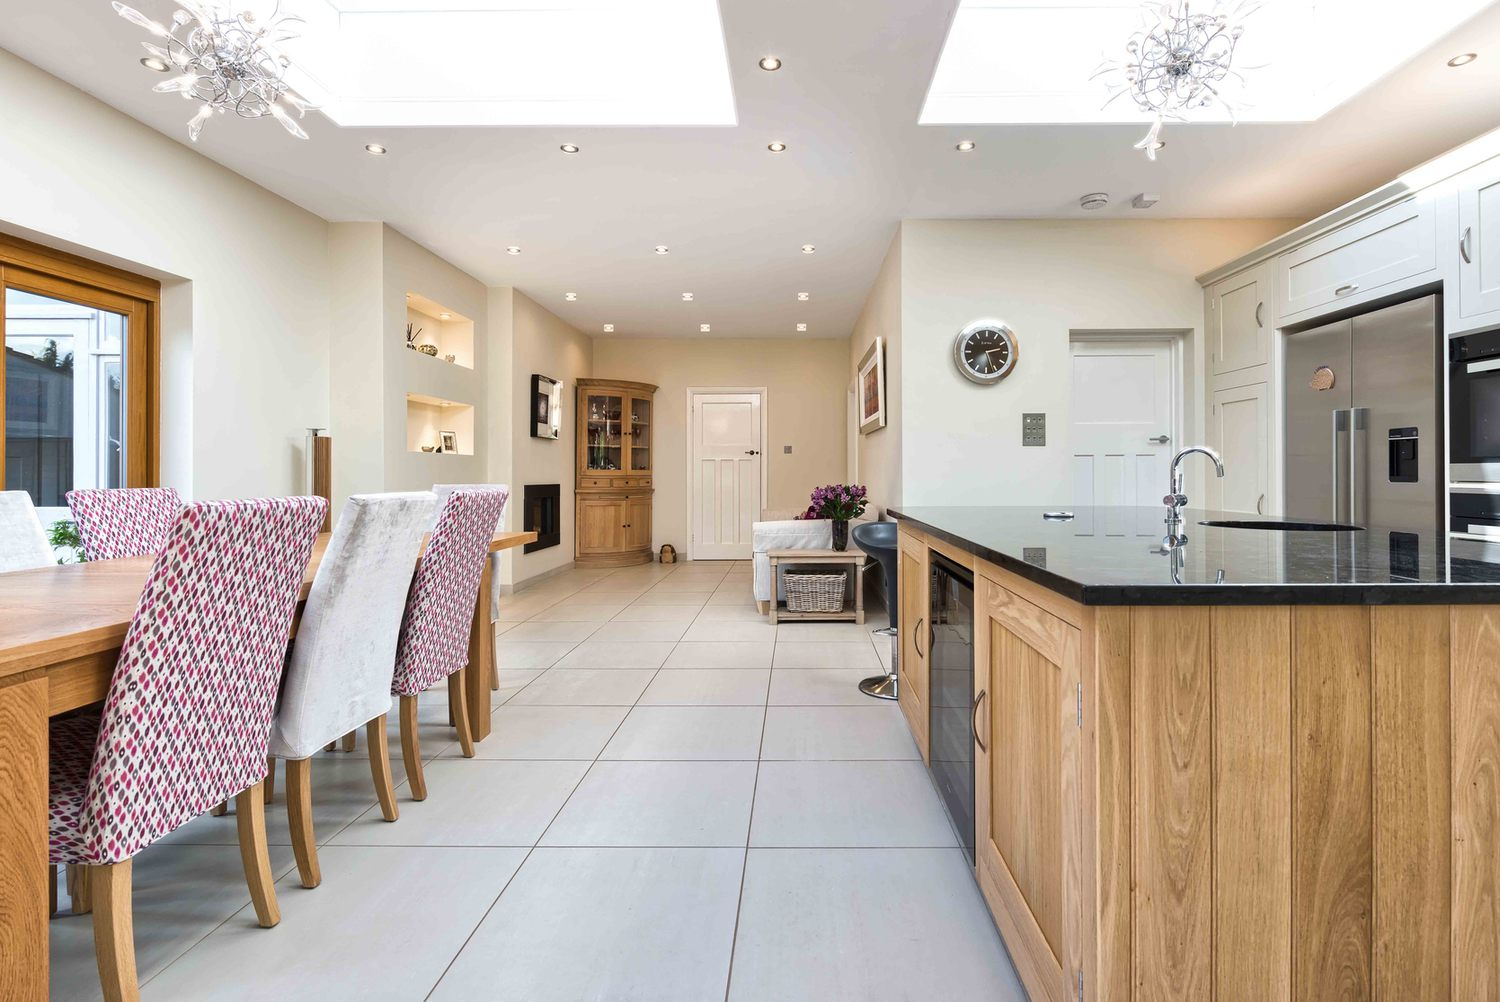 The dining room and kitchen view a house extension by Harvey Norman Architects St Albans